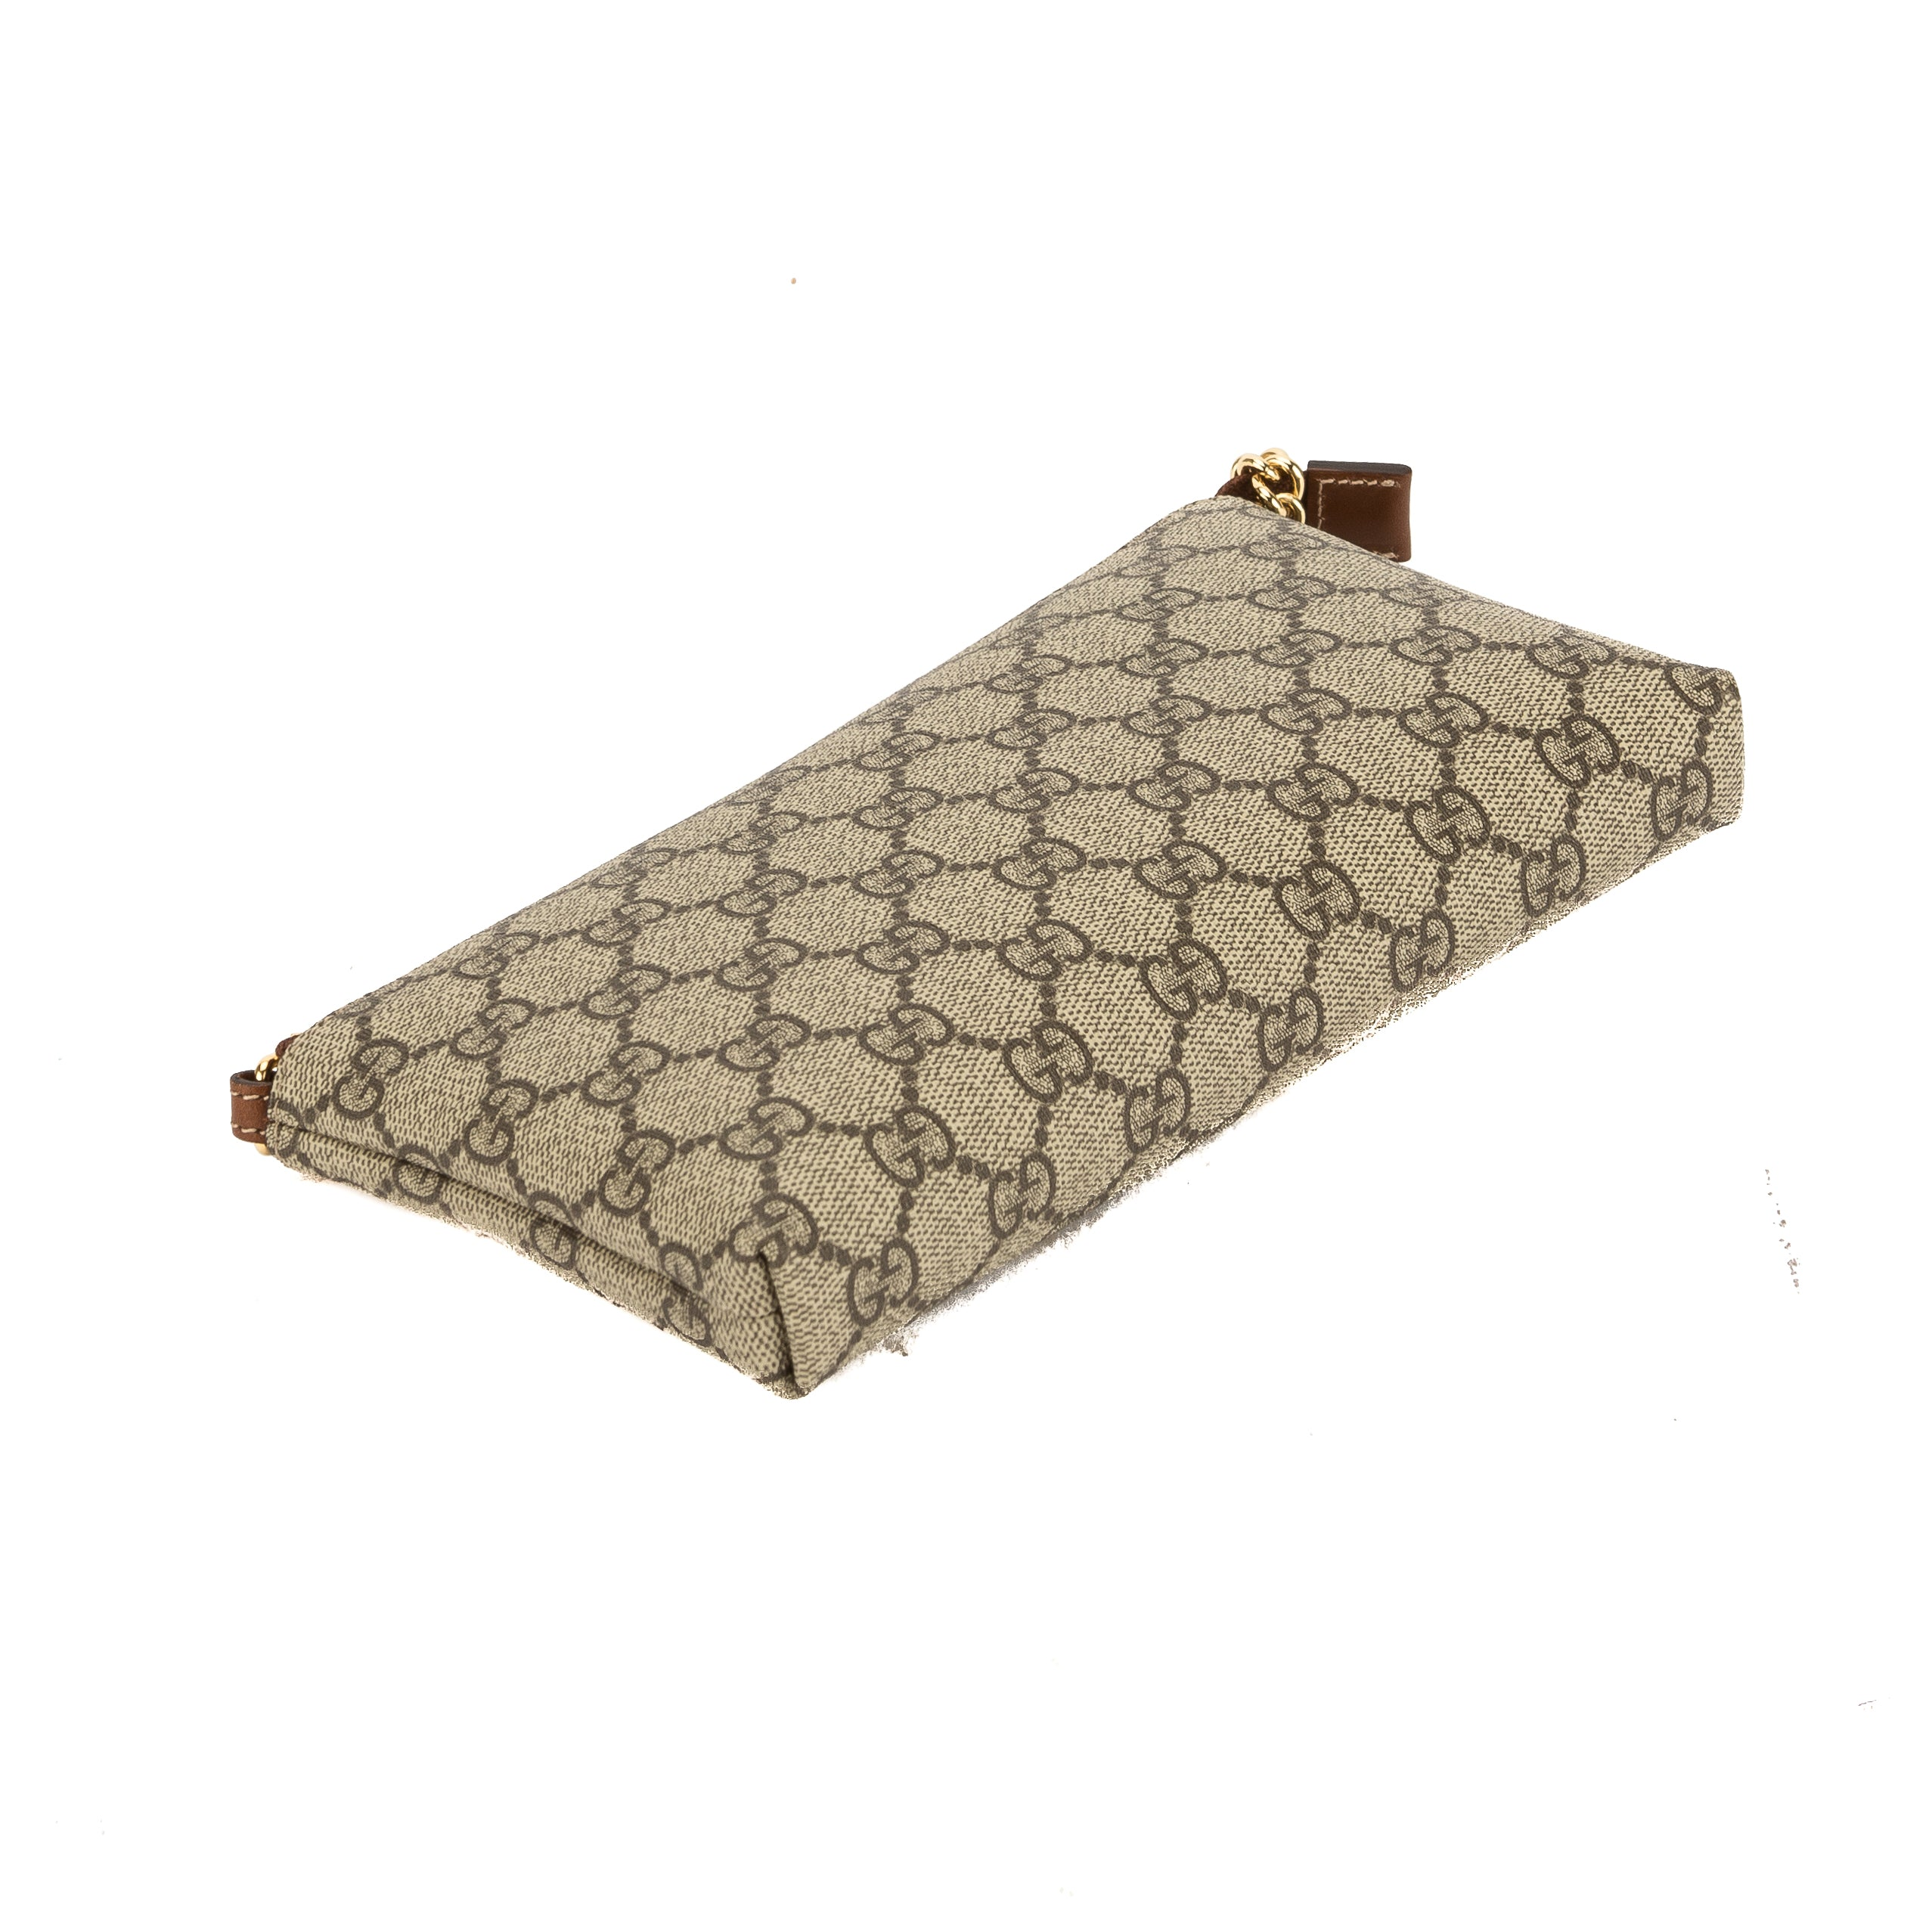 526e3aa485d4a2 Gucci GG Supreme Canvas Wrist Wallet (New with Tags) - 3626016 | LuxeDH